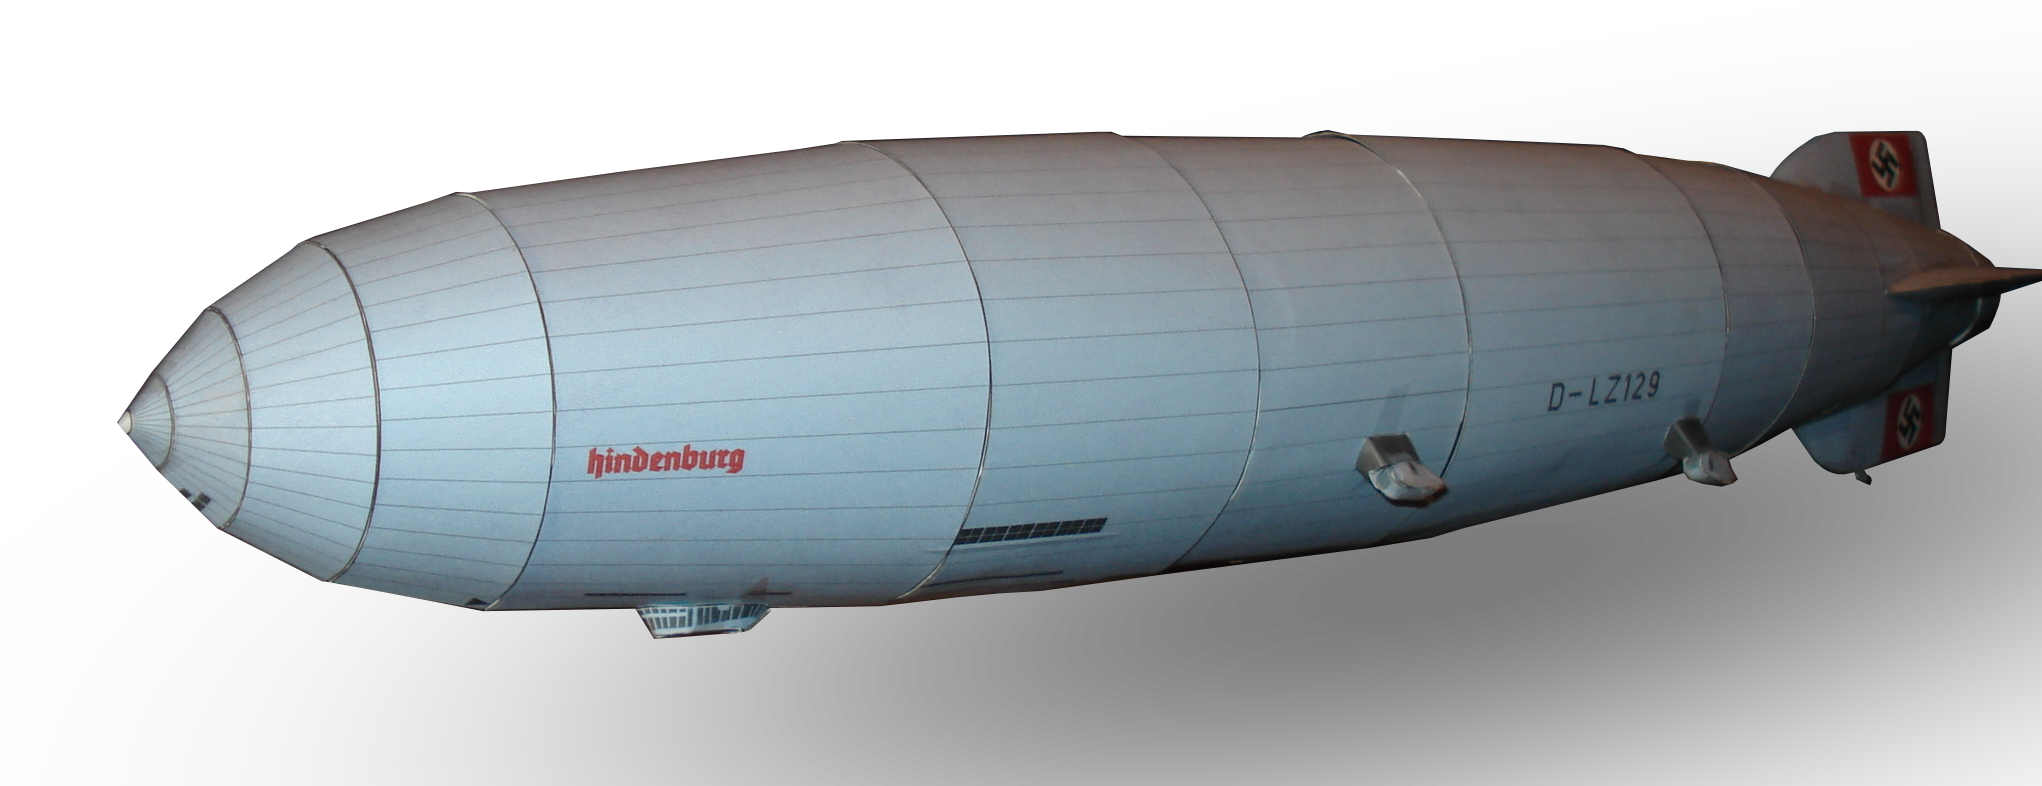 LZ 129 Hindenburg Airship paper model by RocketmanTan